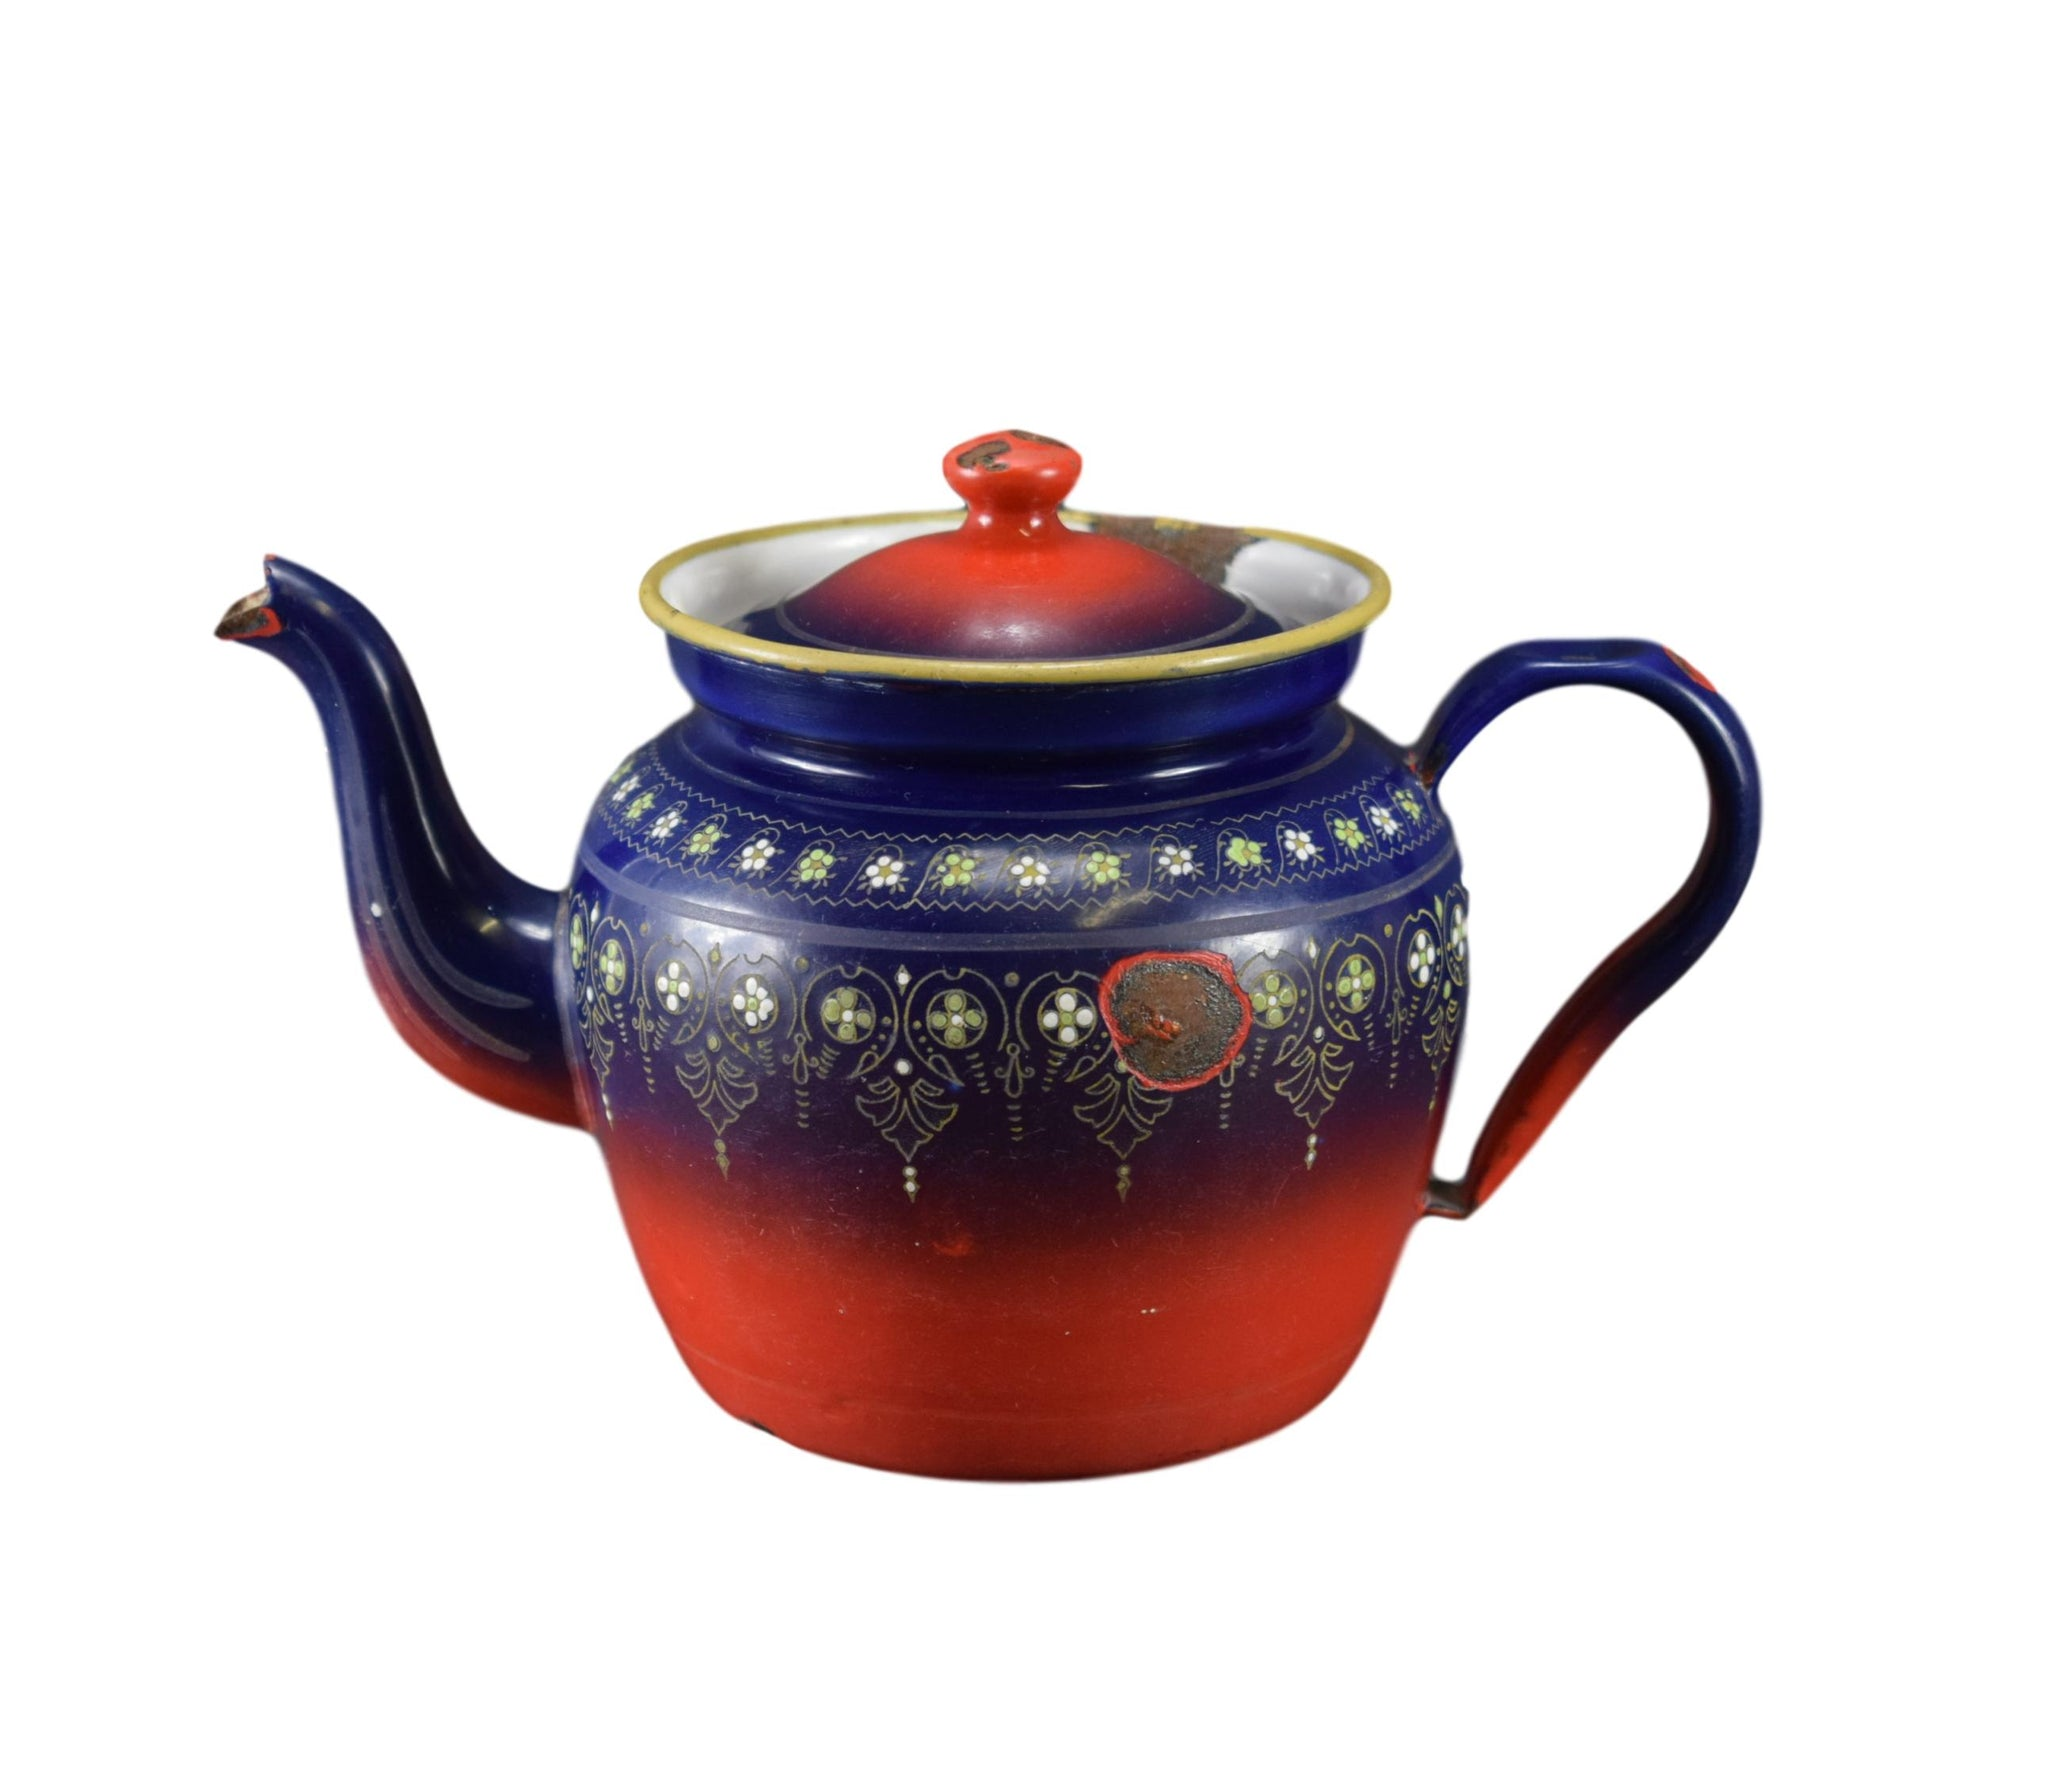 French Vintage Red and Blue Enamel Tea Pot BB Mark Kitchenalia